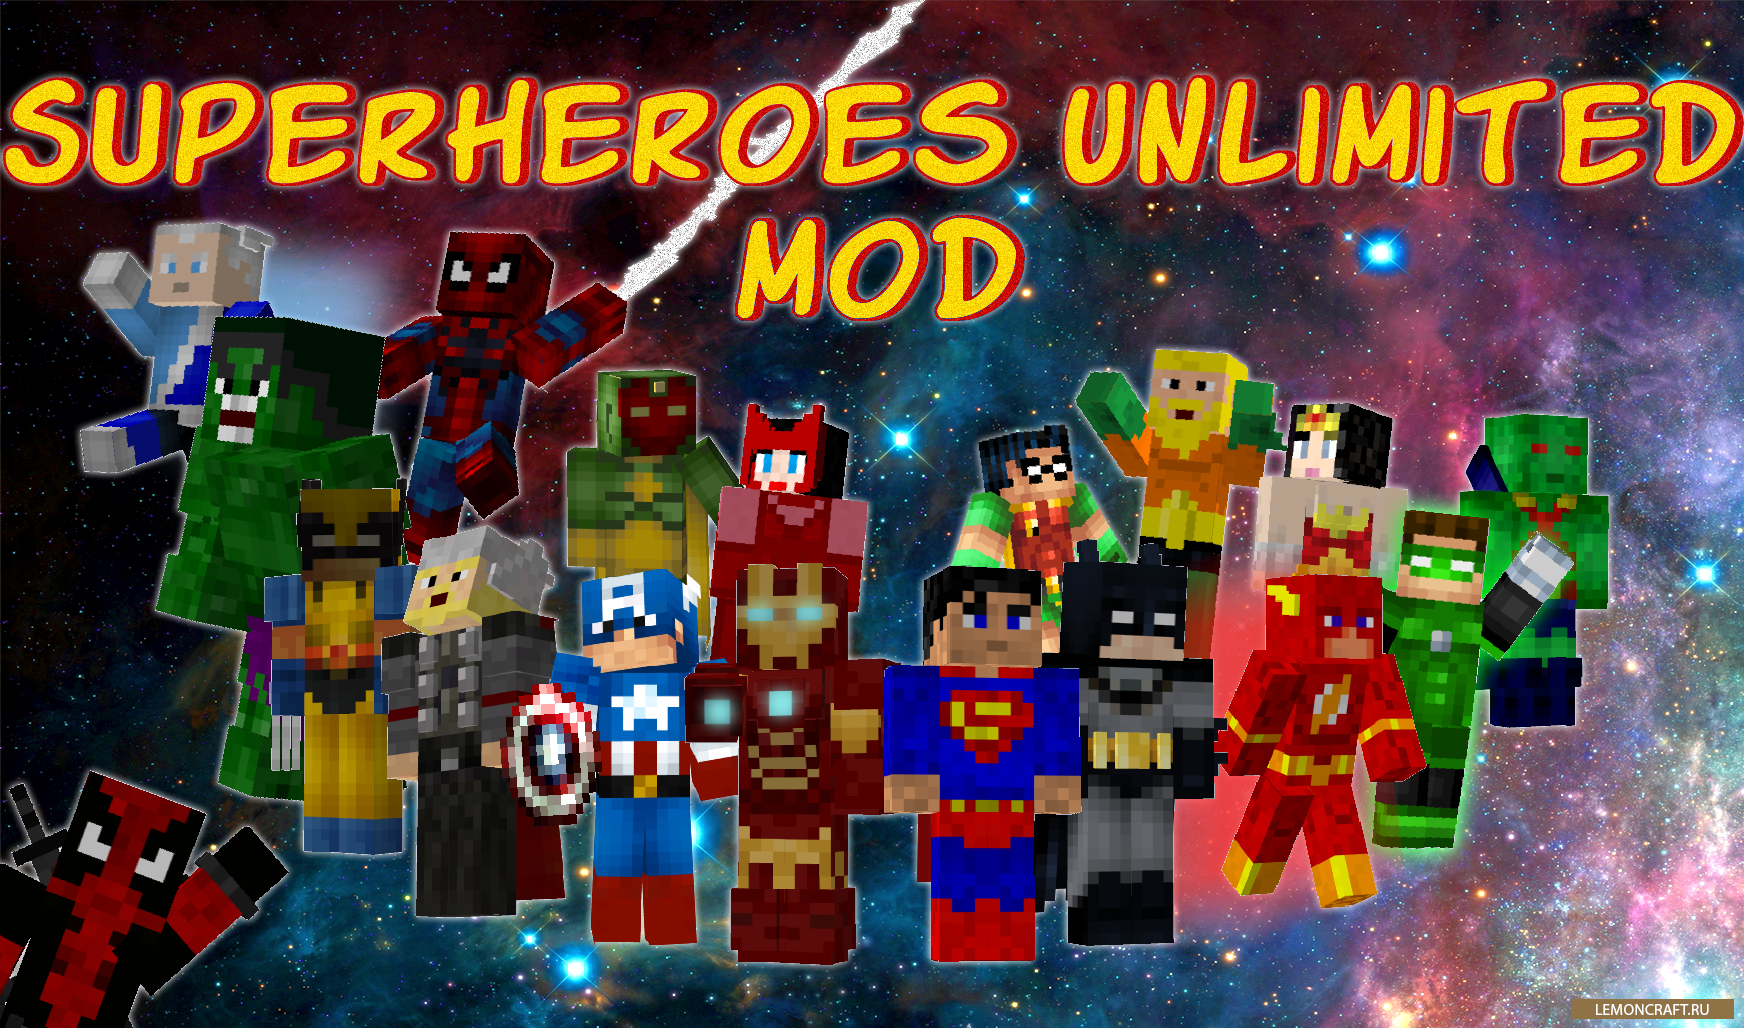 Superheroes Unlimited - мод на супергероев для Minecraft 1.7.10